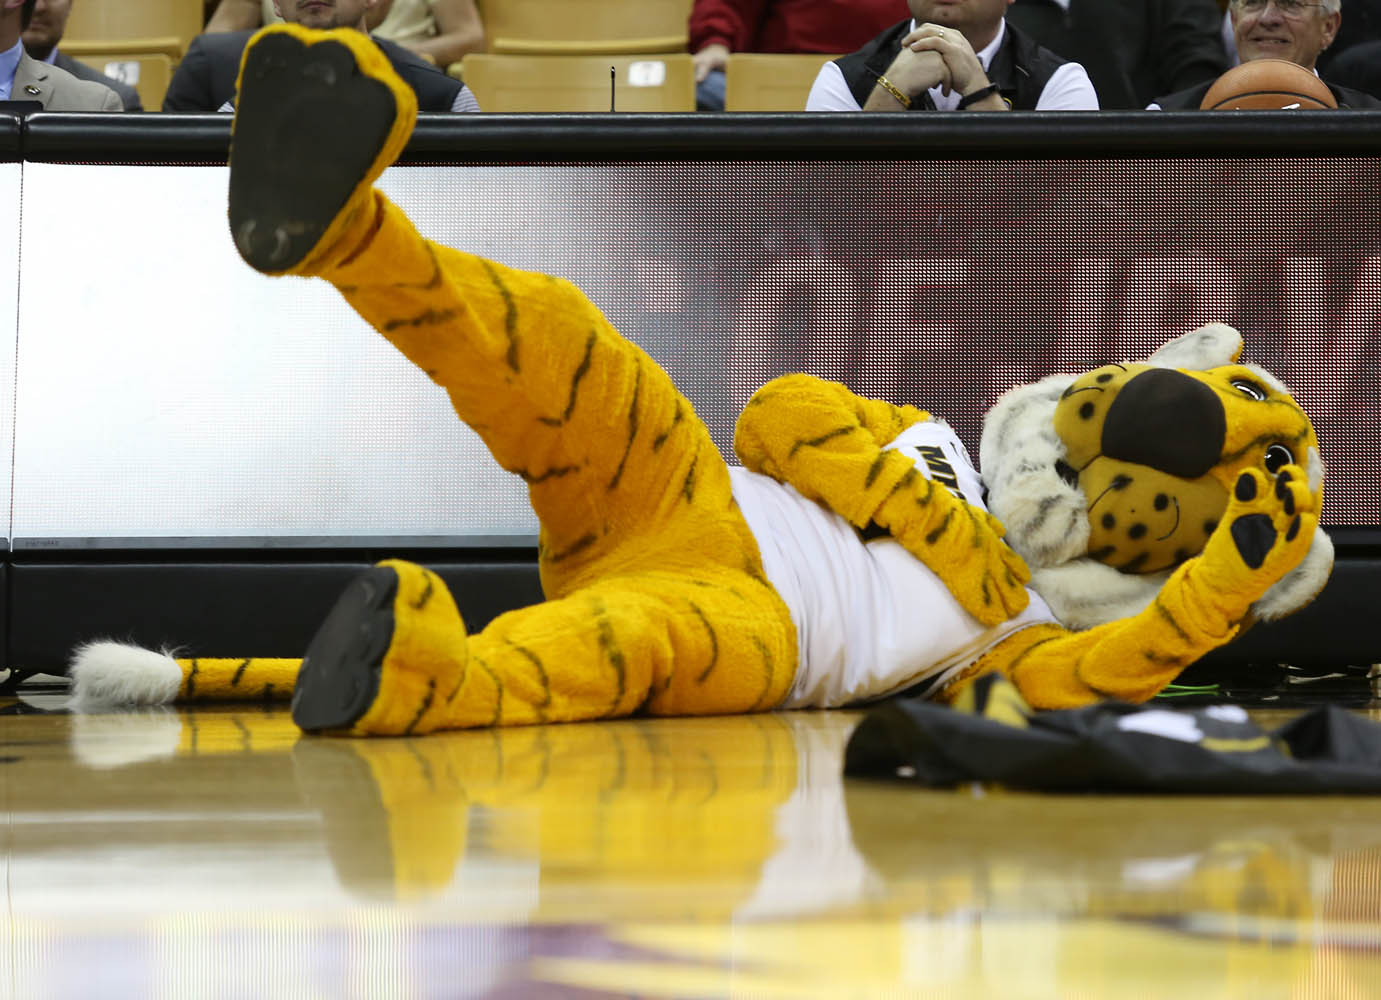 Truman the Tiger falls over in disbelief while watching the magic show performed during halftime.